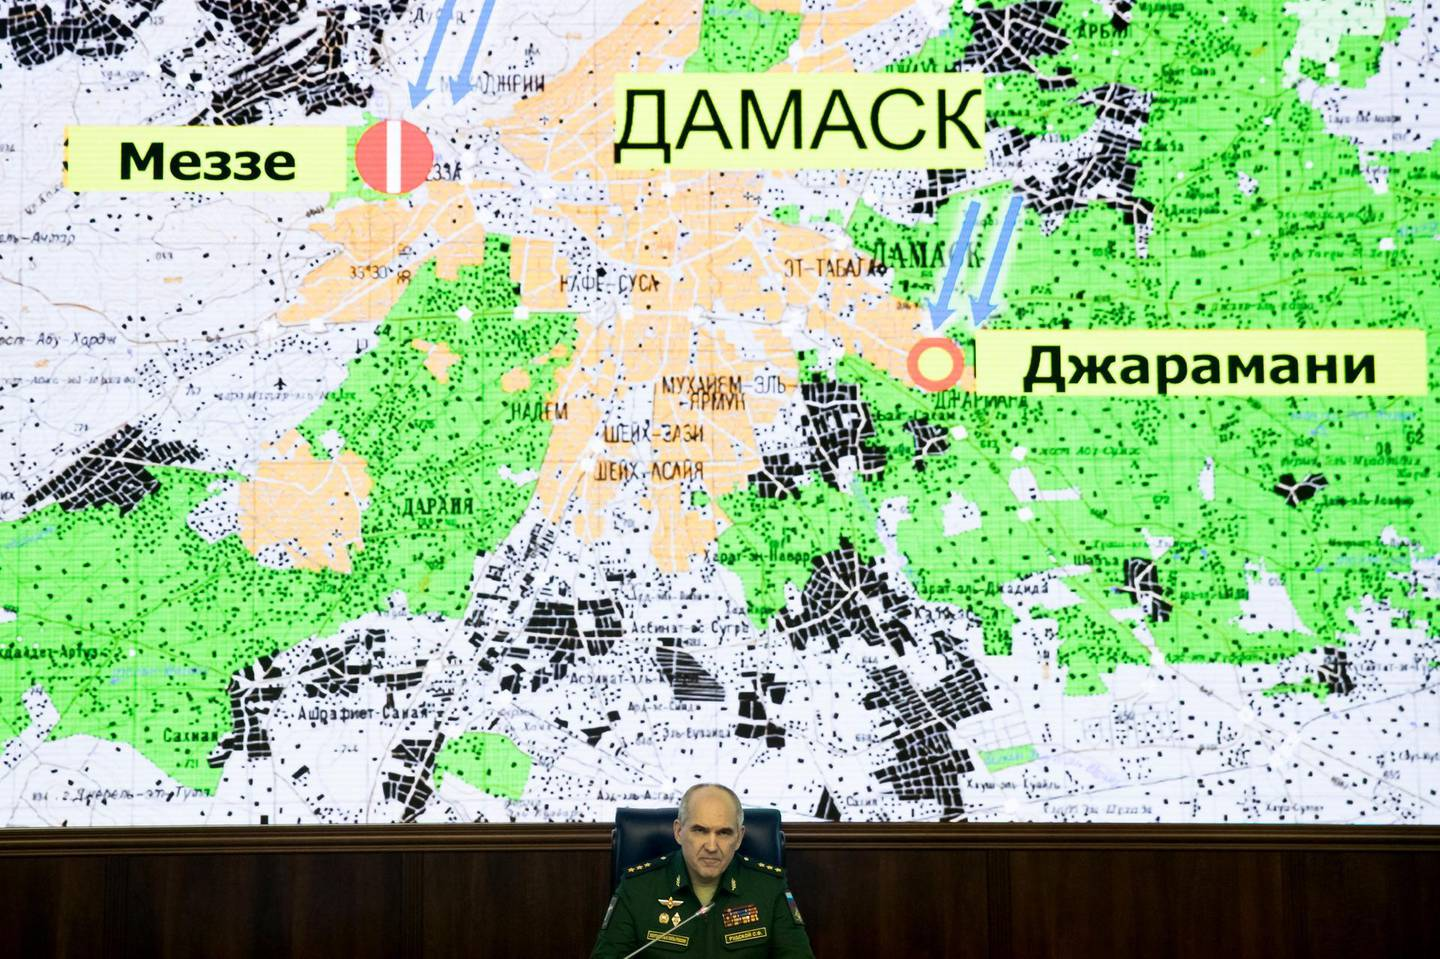 Col. Gen. Sergei Rudskoi of the military's General Staff speaks during a briefing at the Russian Defense Ministry in Moscow, Russia, Saturday, April 14, 2018. Rudskoi says Saturday's strike hasn't caused any casualties and Syrian military facilities targeted by the U.S., Britain and France have suffered only minor damage. (AP Photo/Pavel Golovkin)